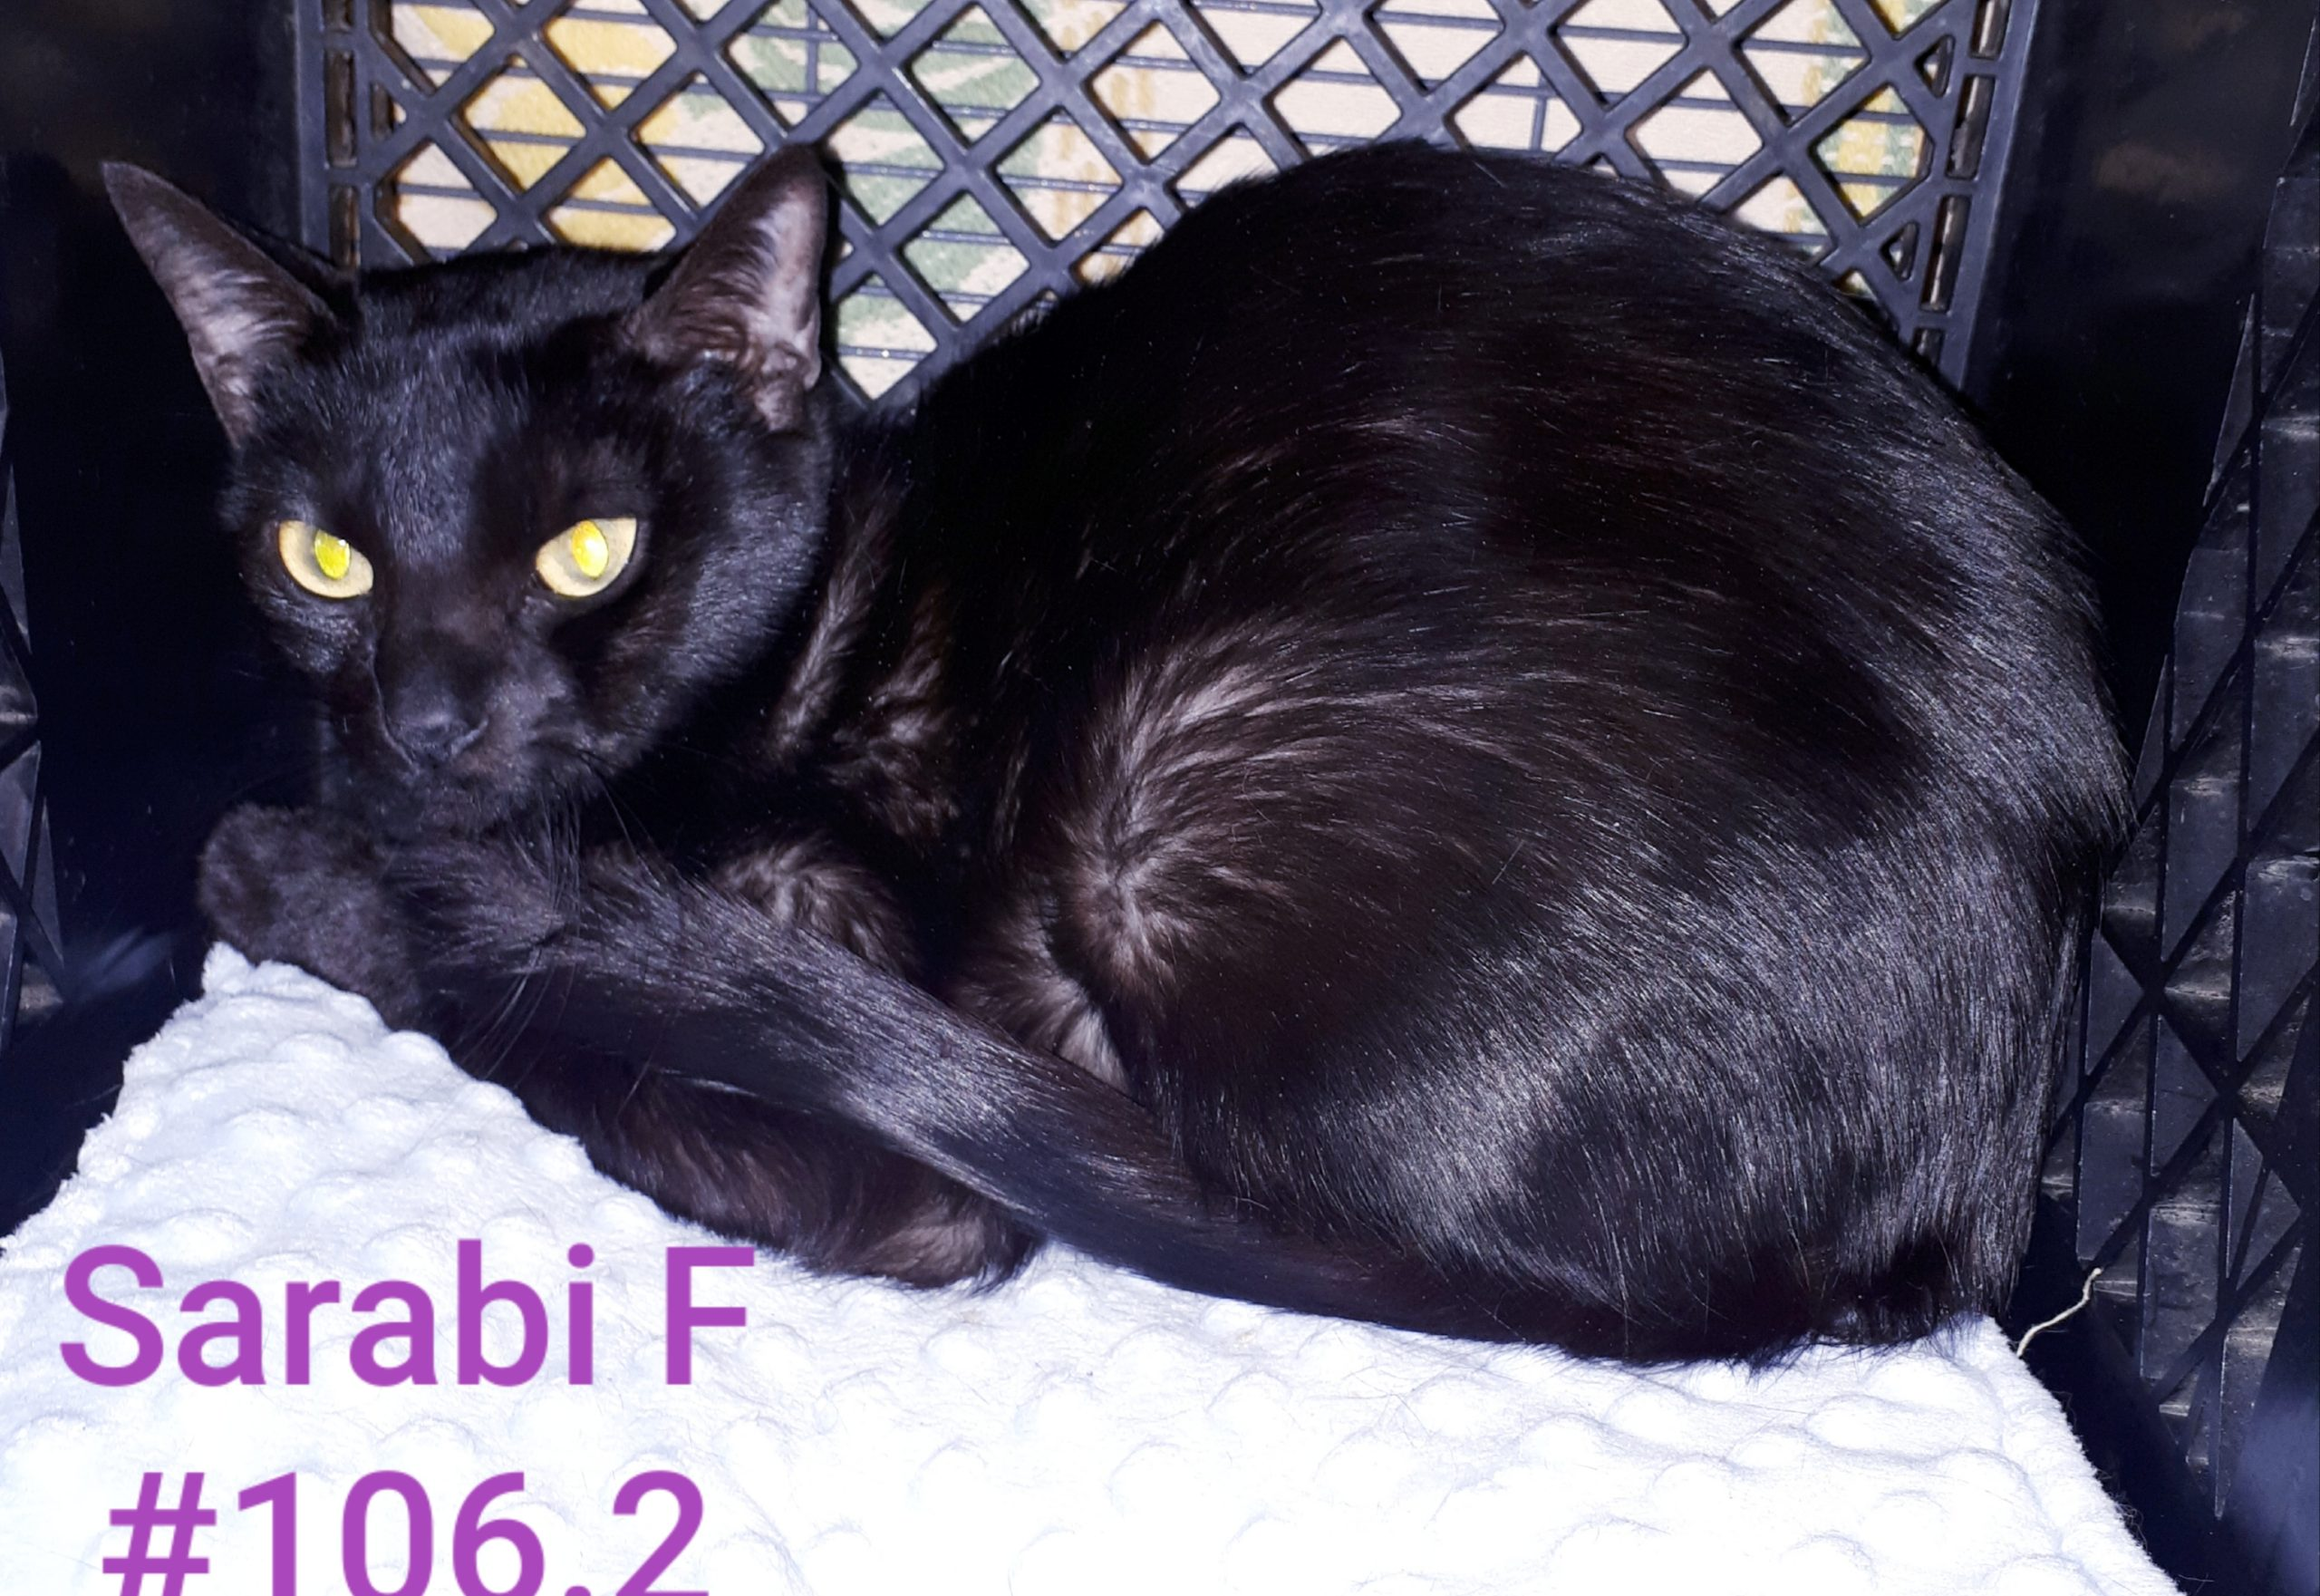 Sarabi, Digby – currently in foster care